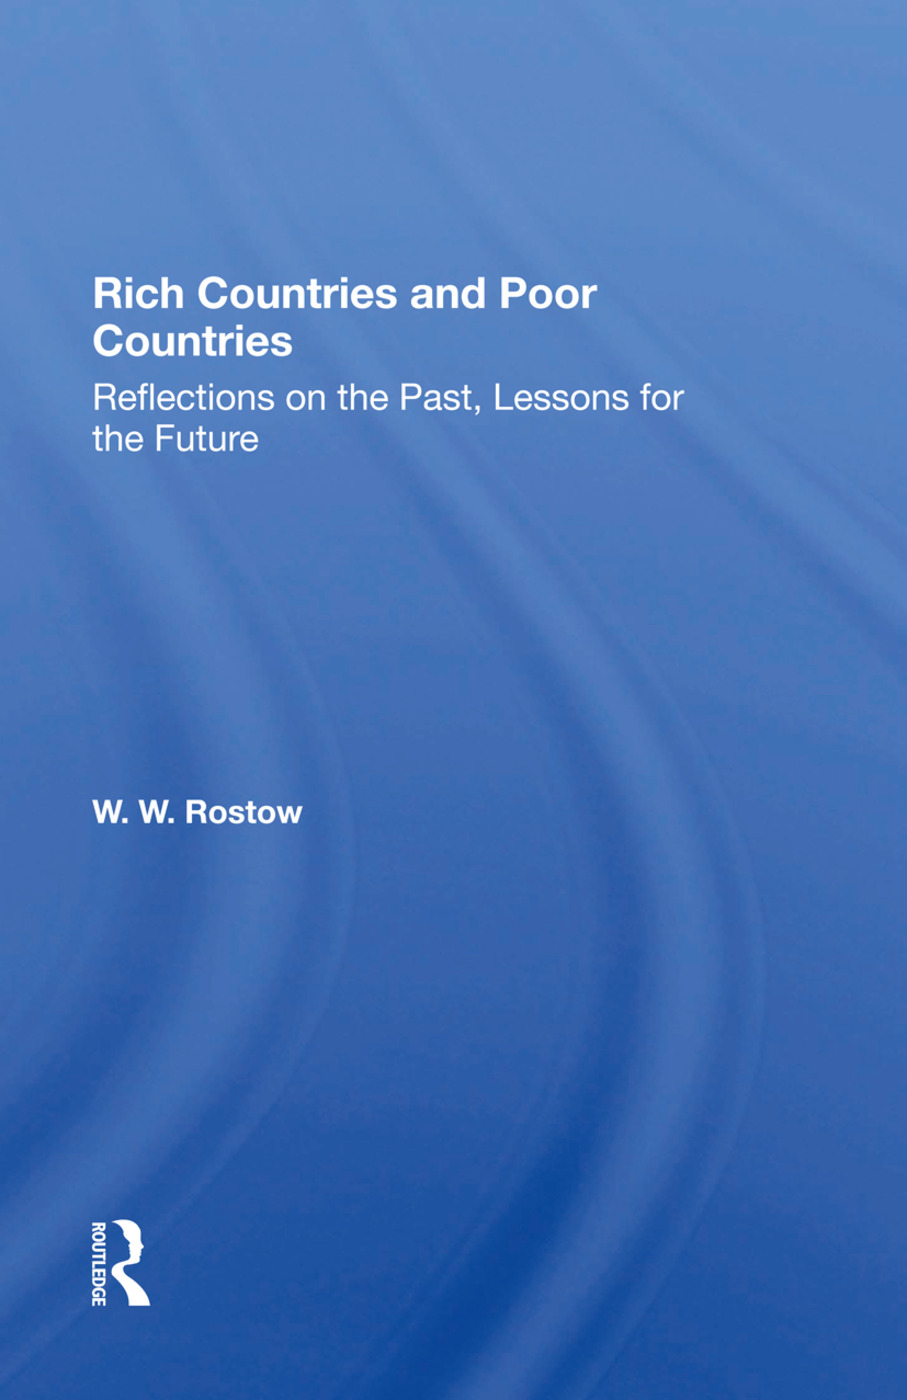 Rich Countries And Poor Countries: Reflections On The Past, Lessons For The Future, 1st Edition (Hardback) book cover